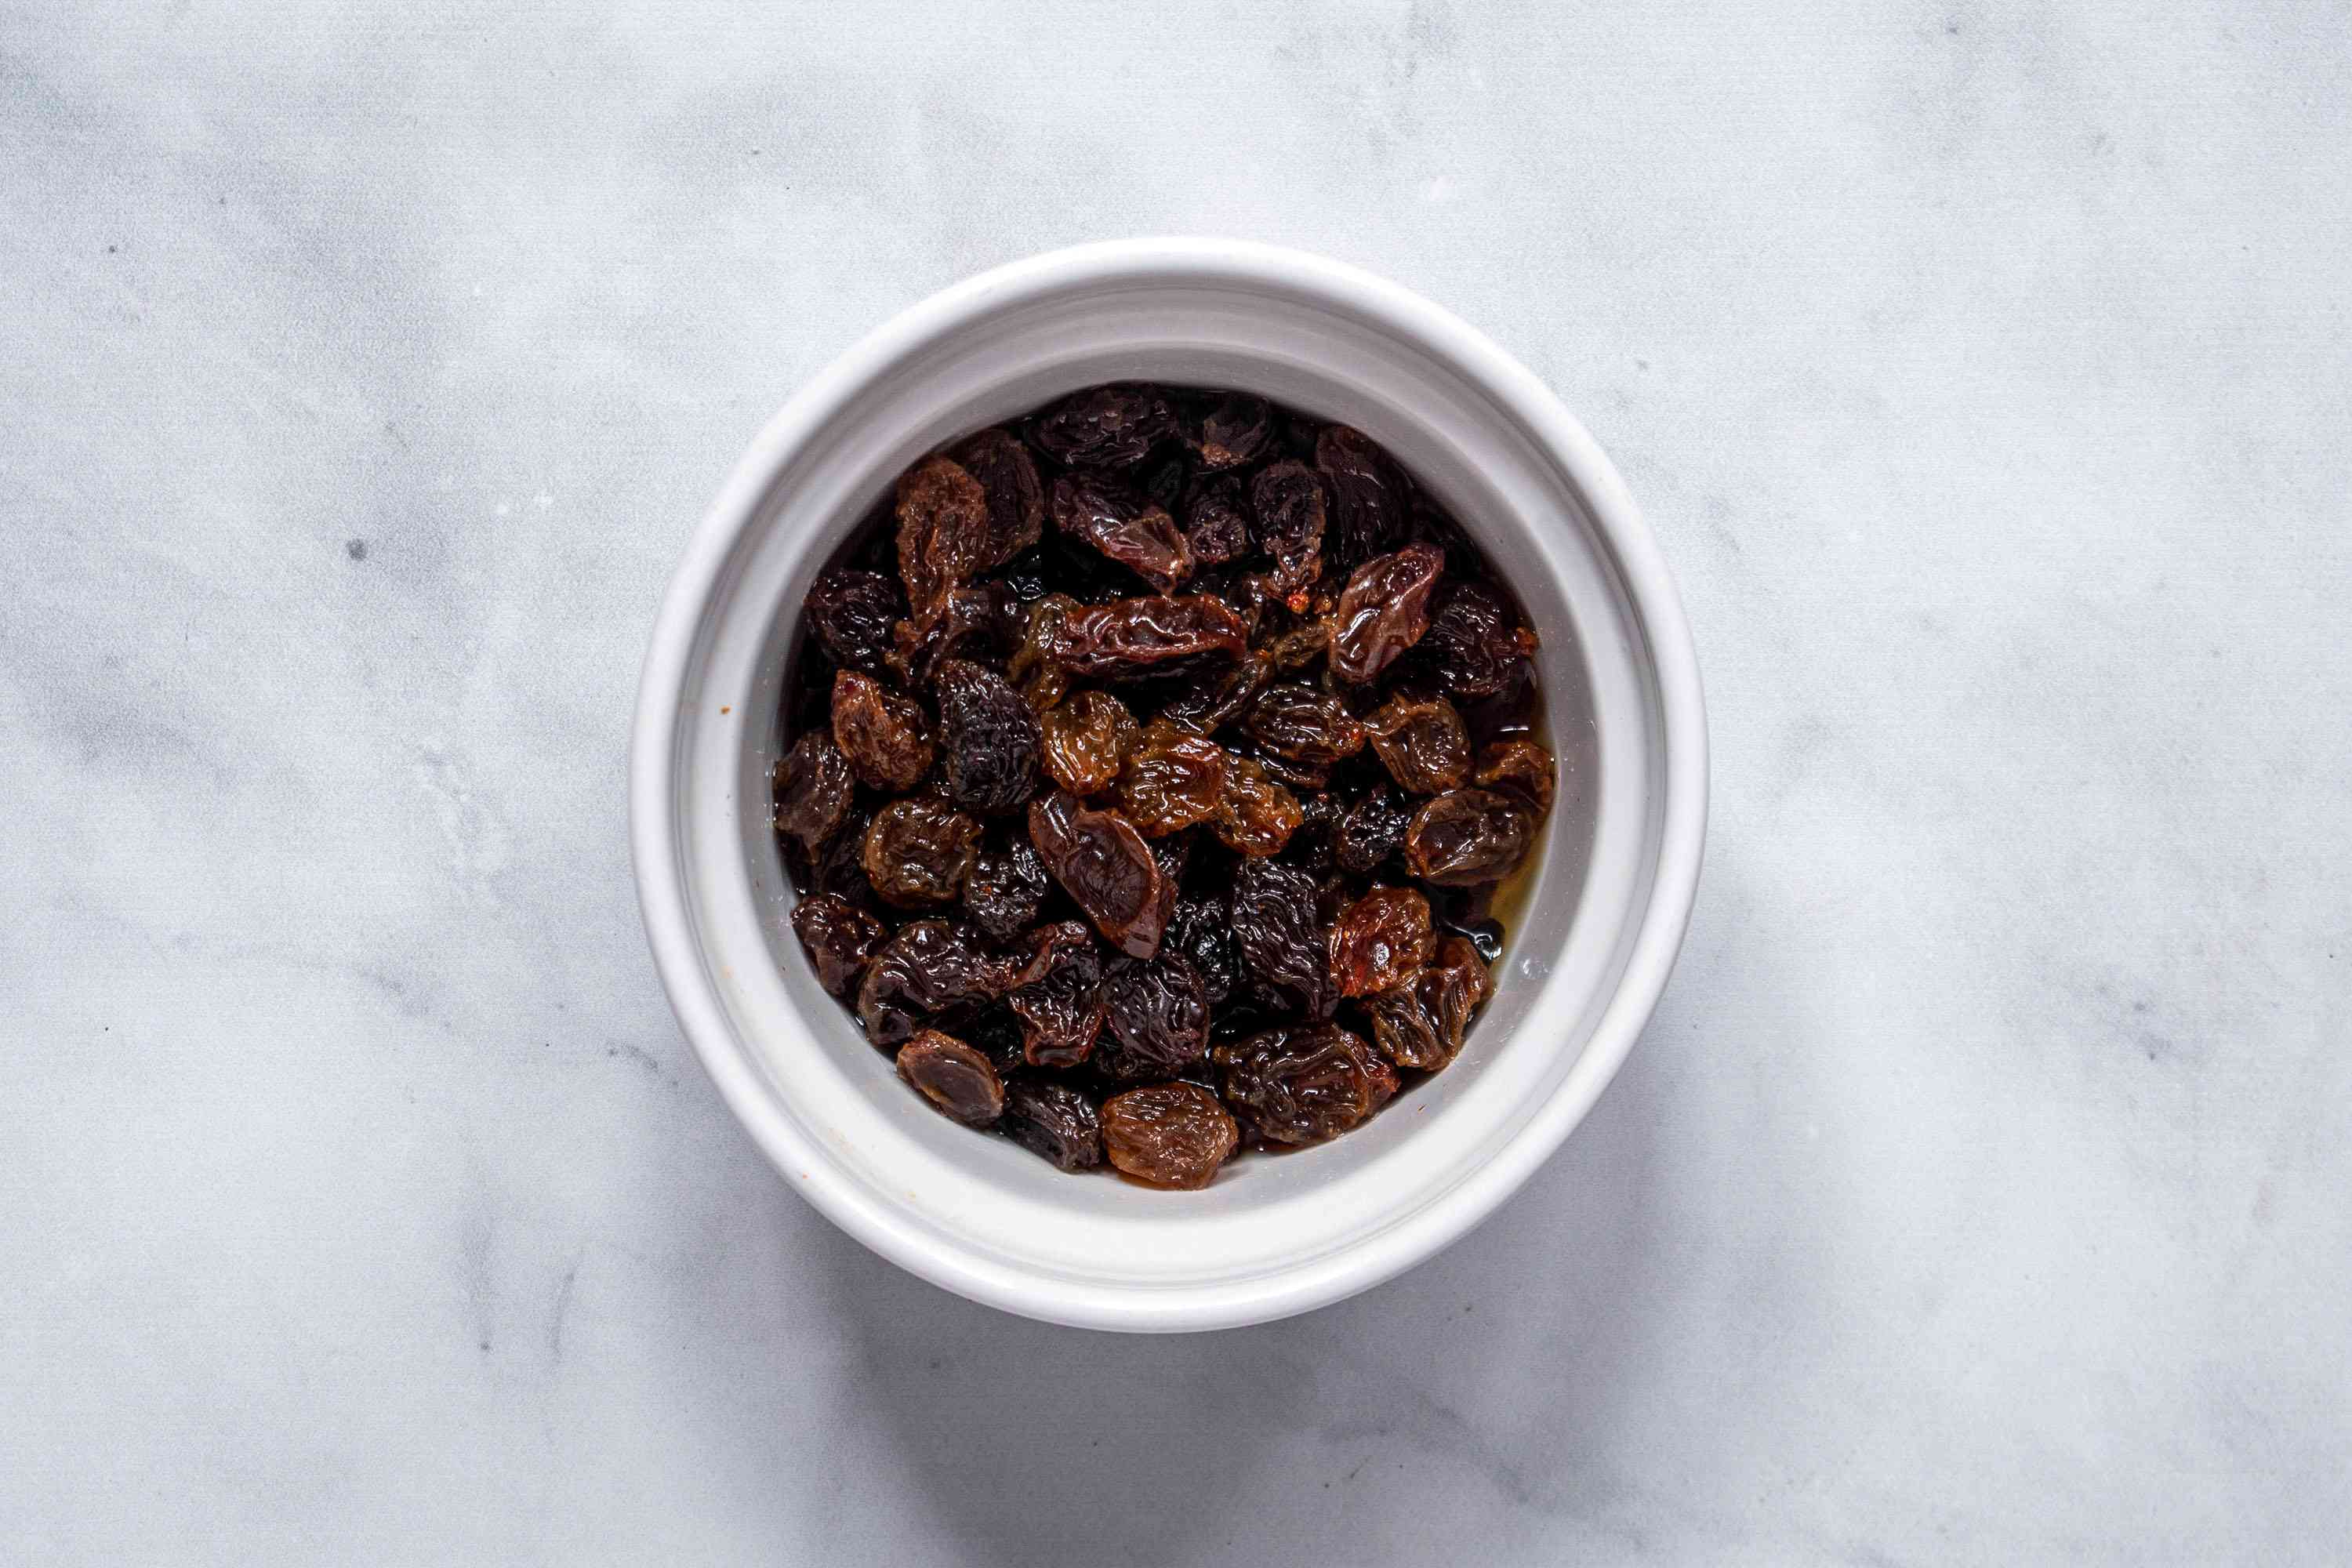 Raisins soaked in rum in a white bowl